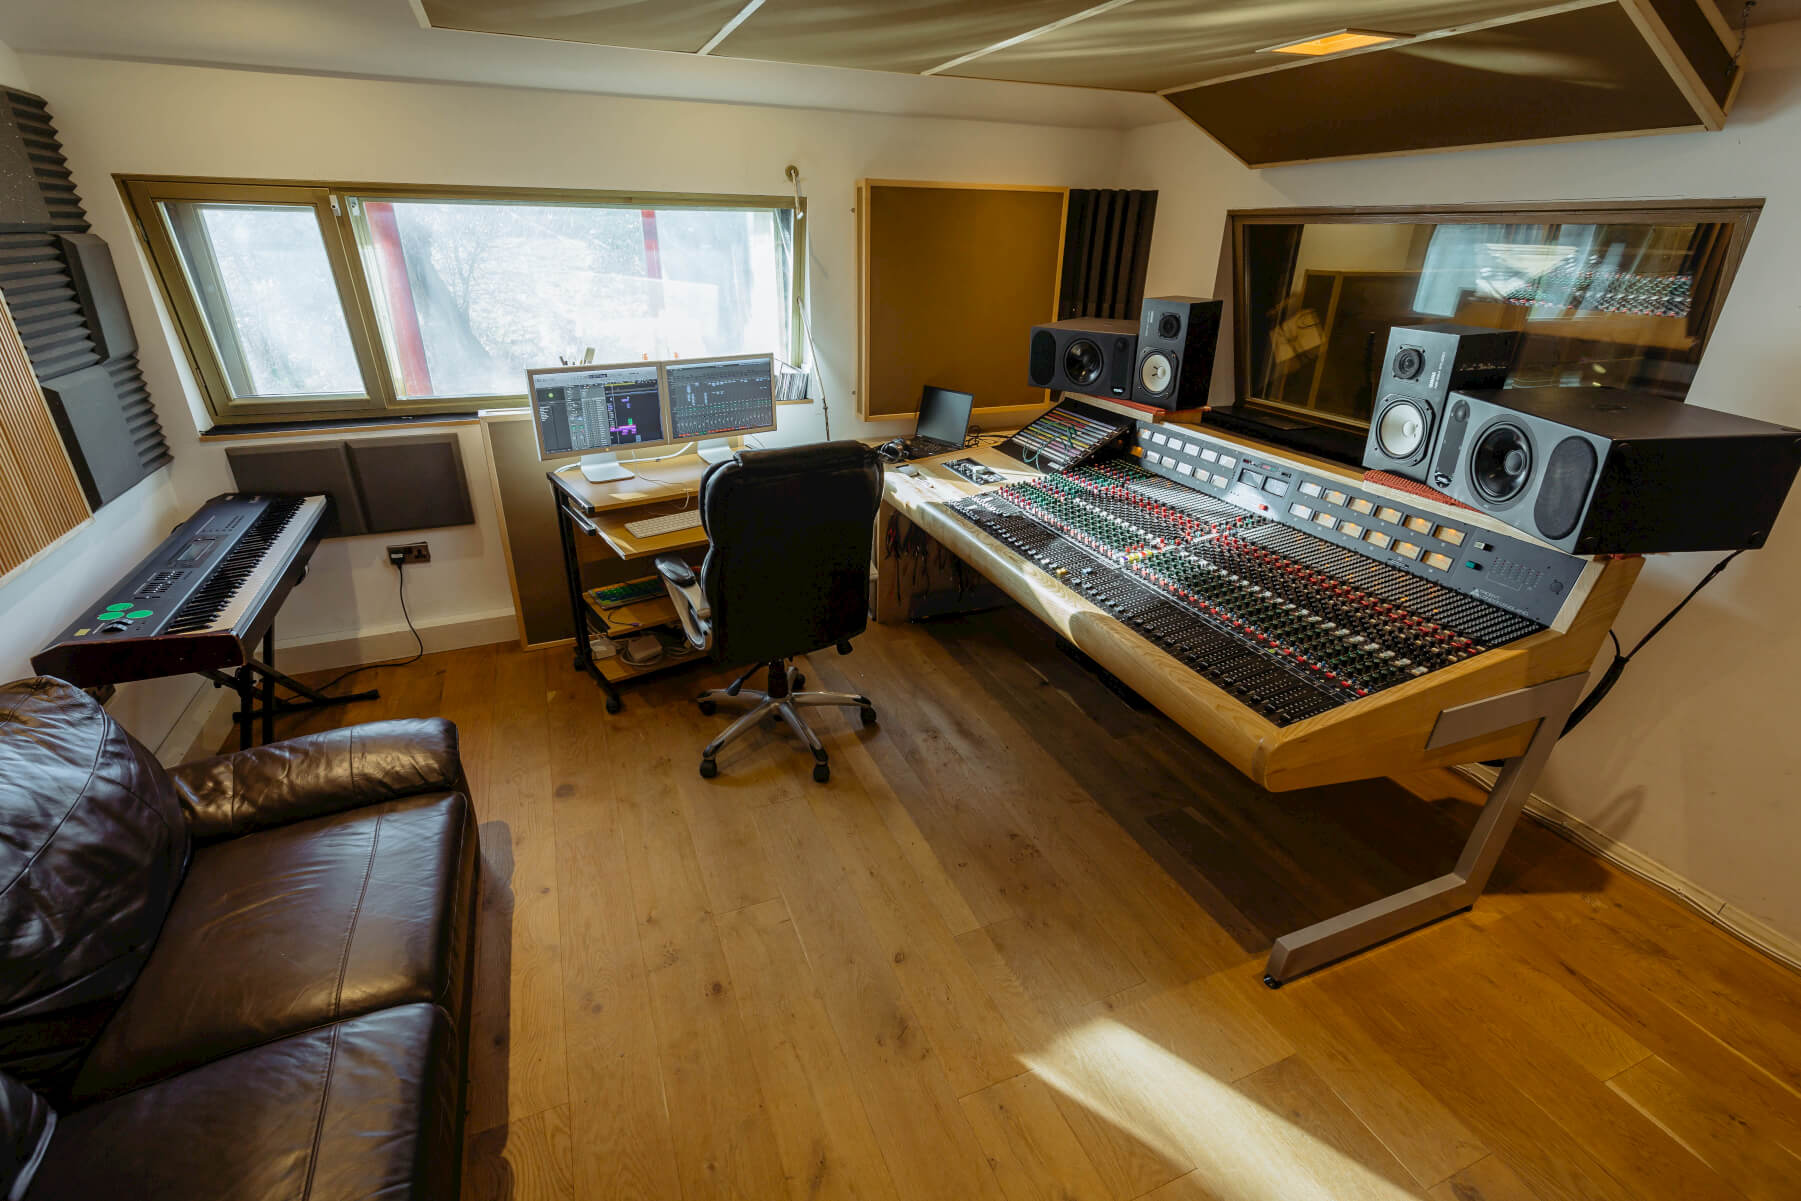 control-room-evolution-studios-oxford-services-image-inside-natural-light.jpg